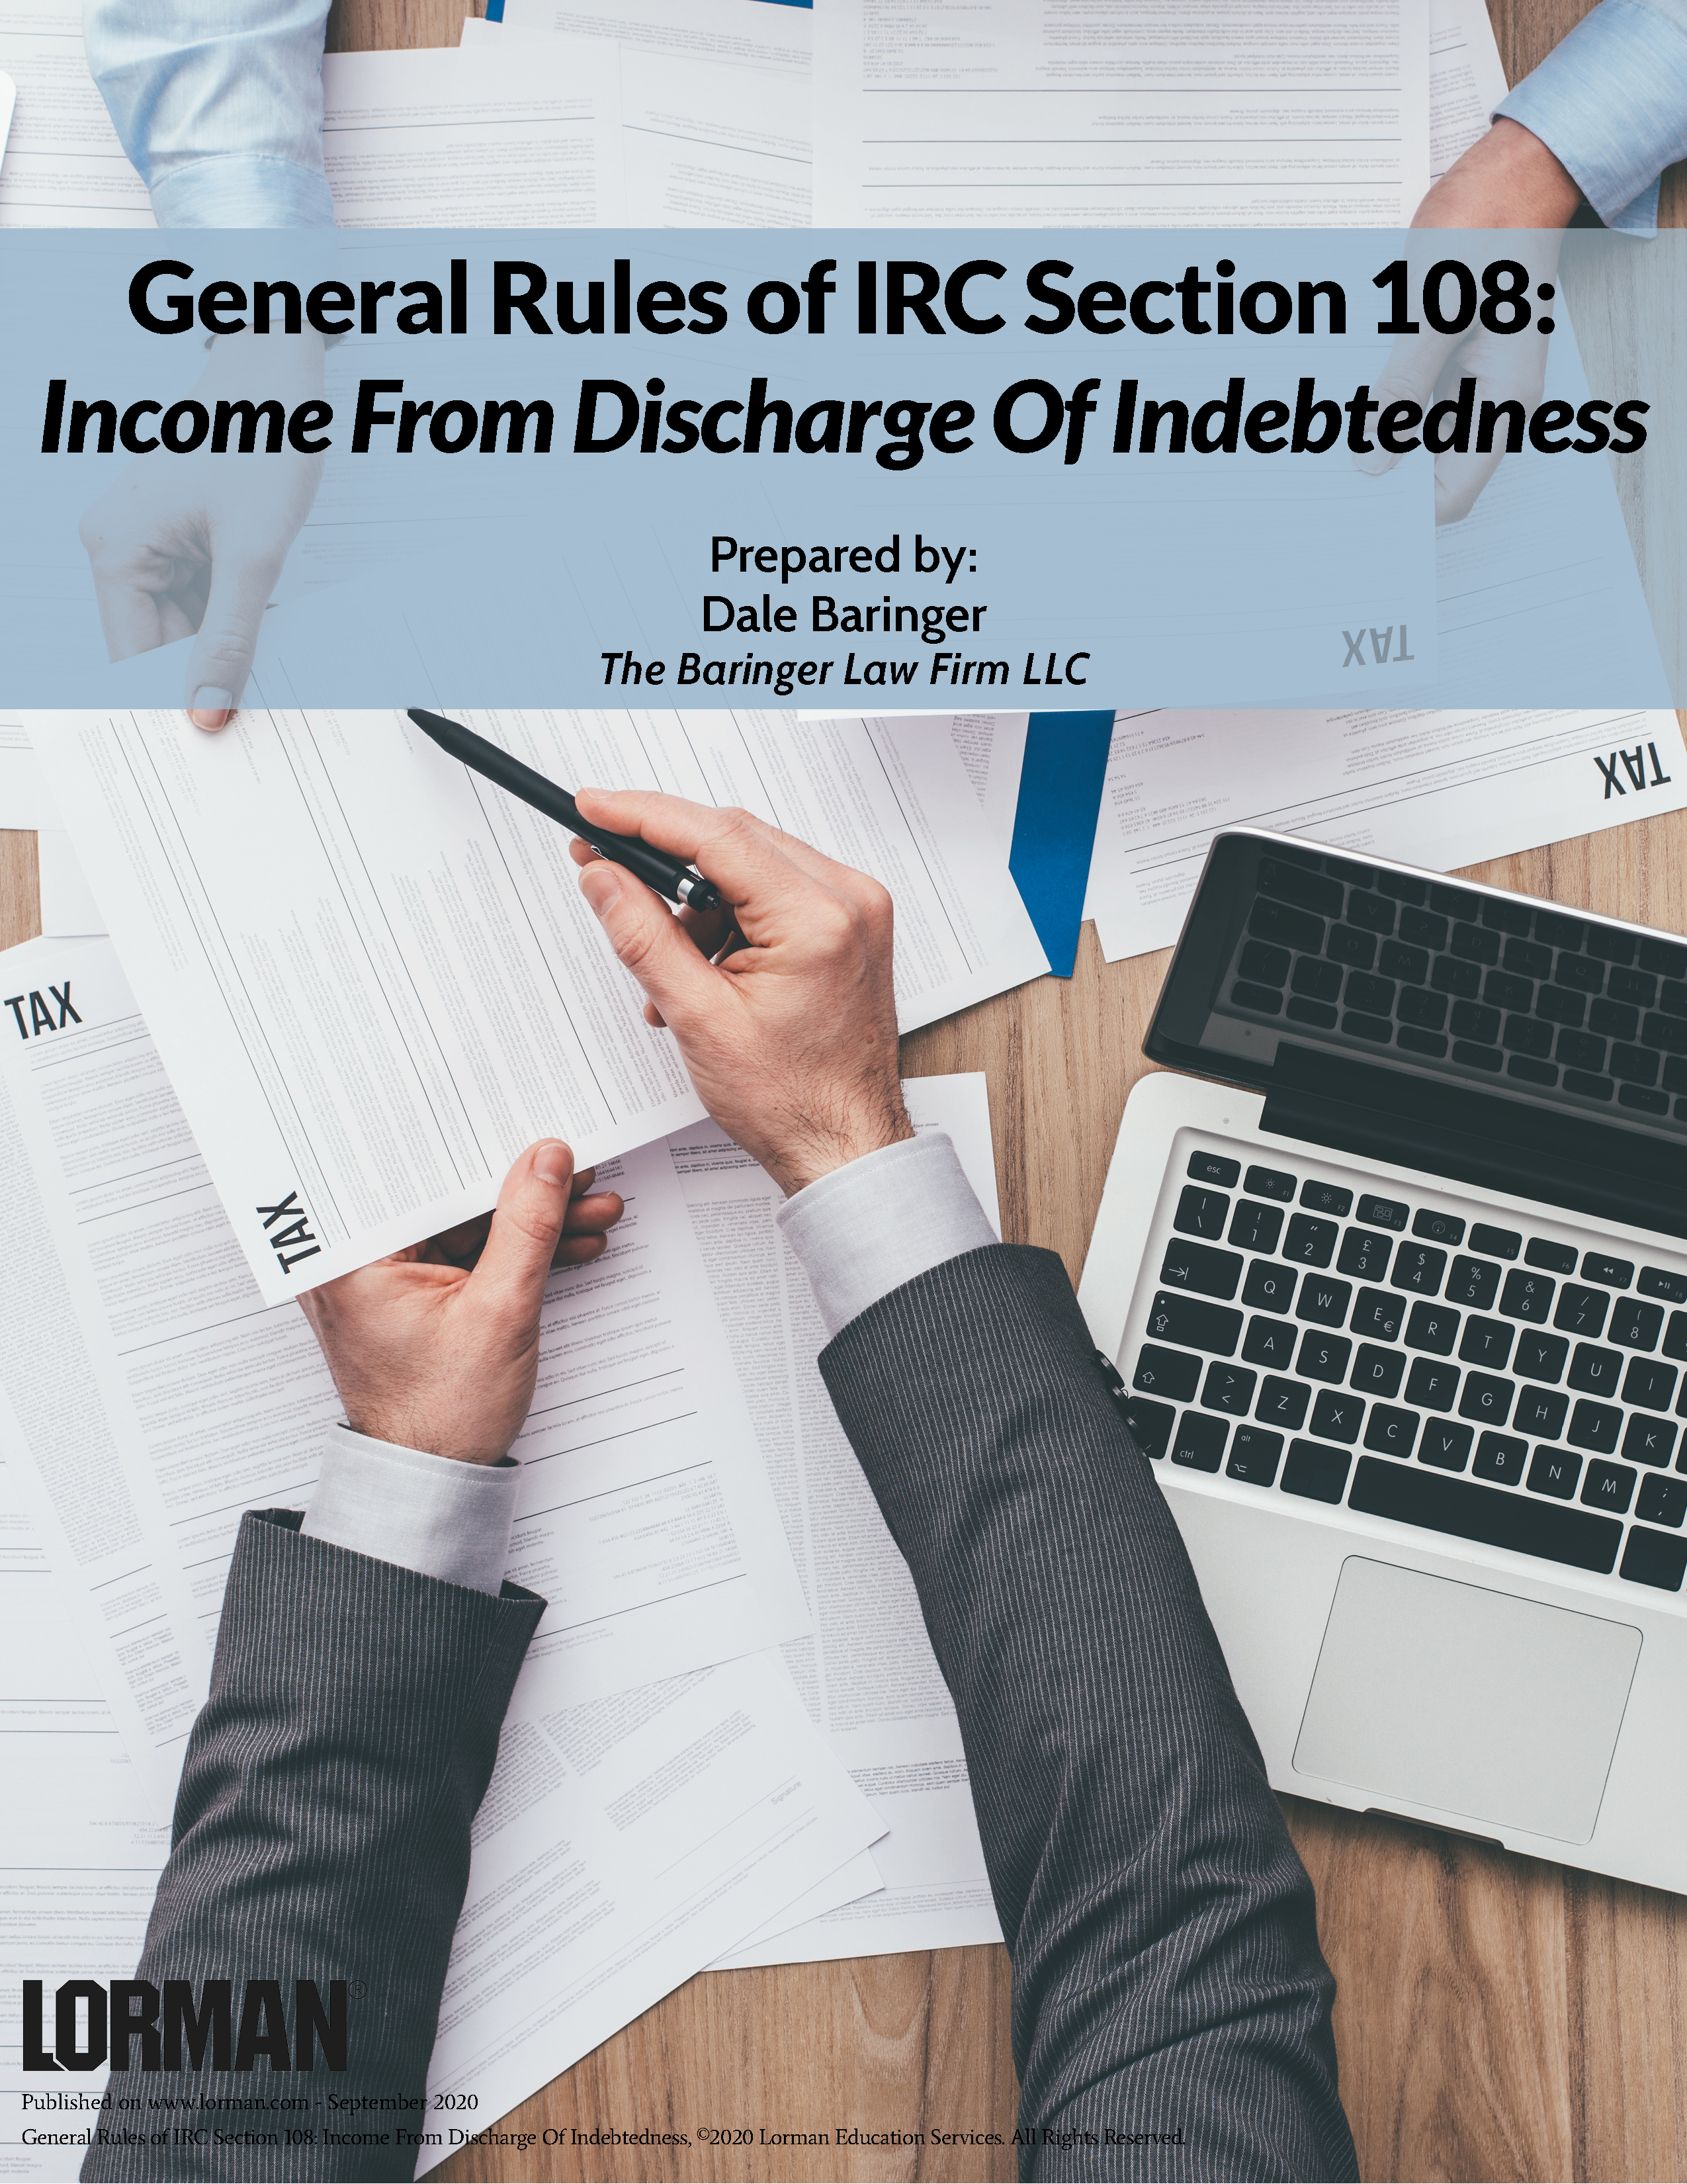 General Rules of IRC Section 108: Income From Discharge Of Indebtedness